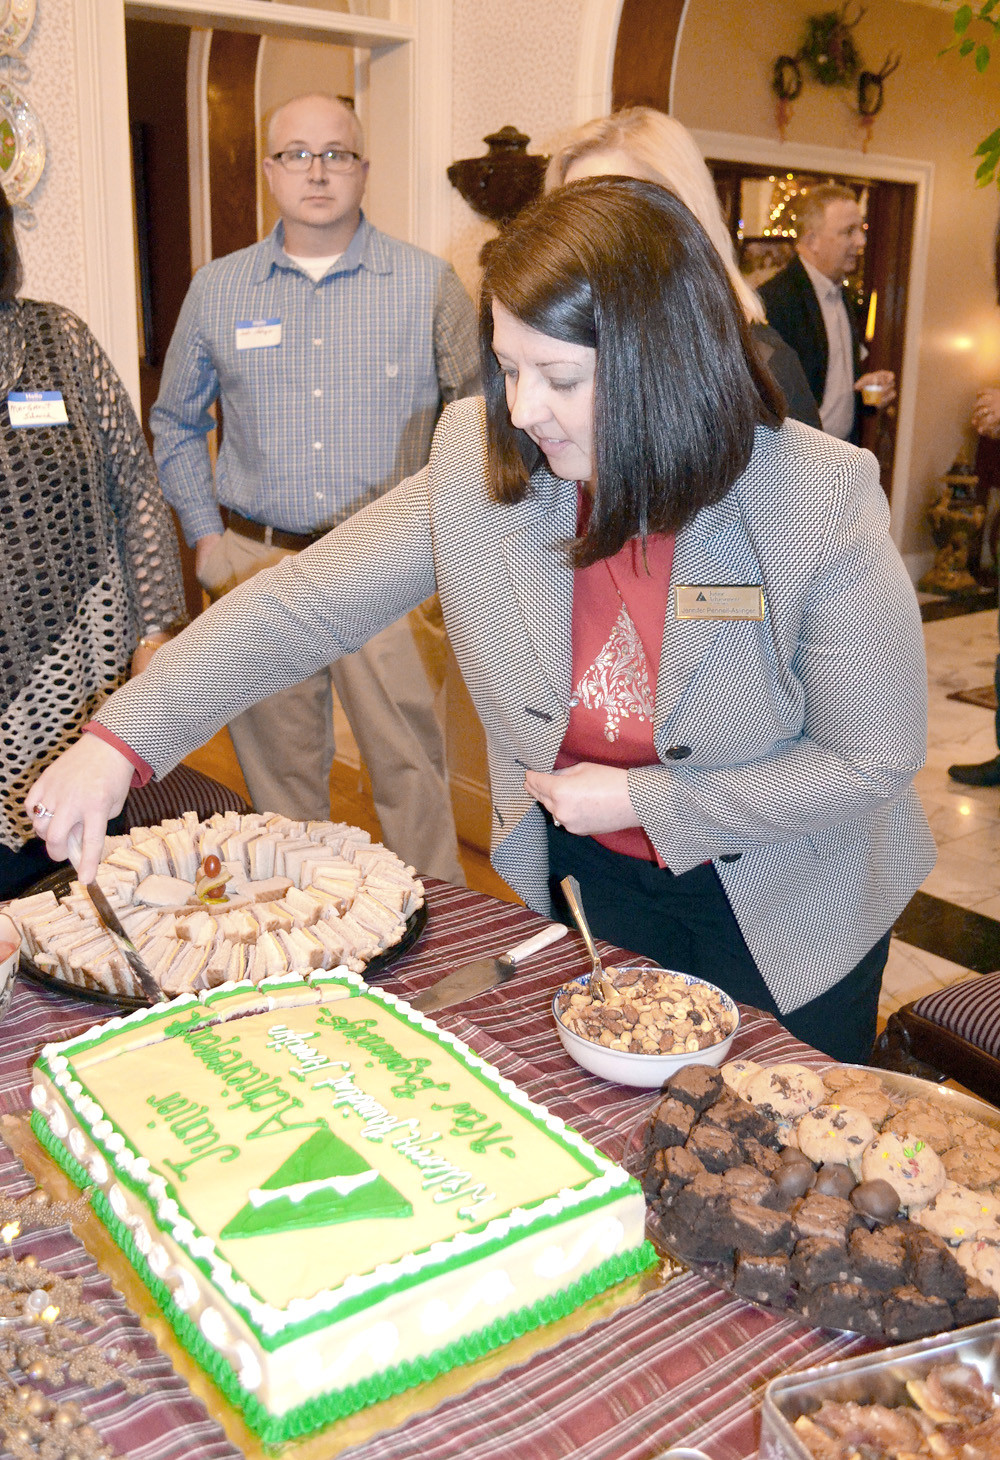 A SPECIAL WELCOMING CAKE was prepared for the new president of Junior Achievement of the Ocoee Region. Jennifer Pennell-Aslinger became JA president in early October.